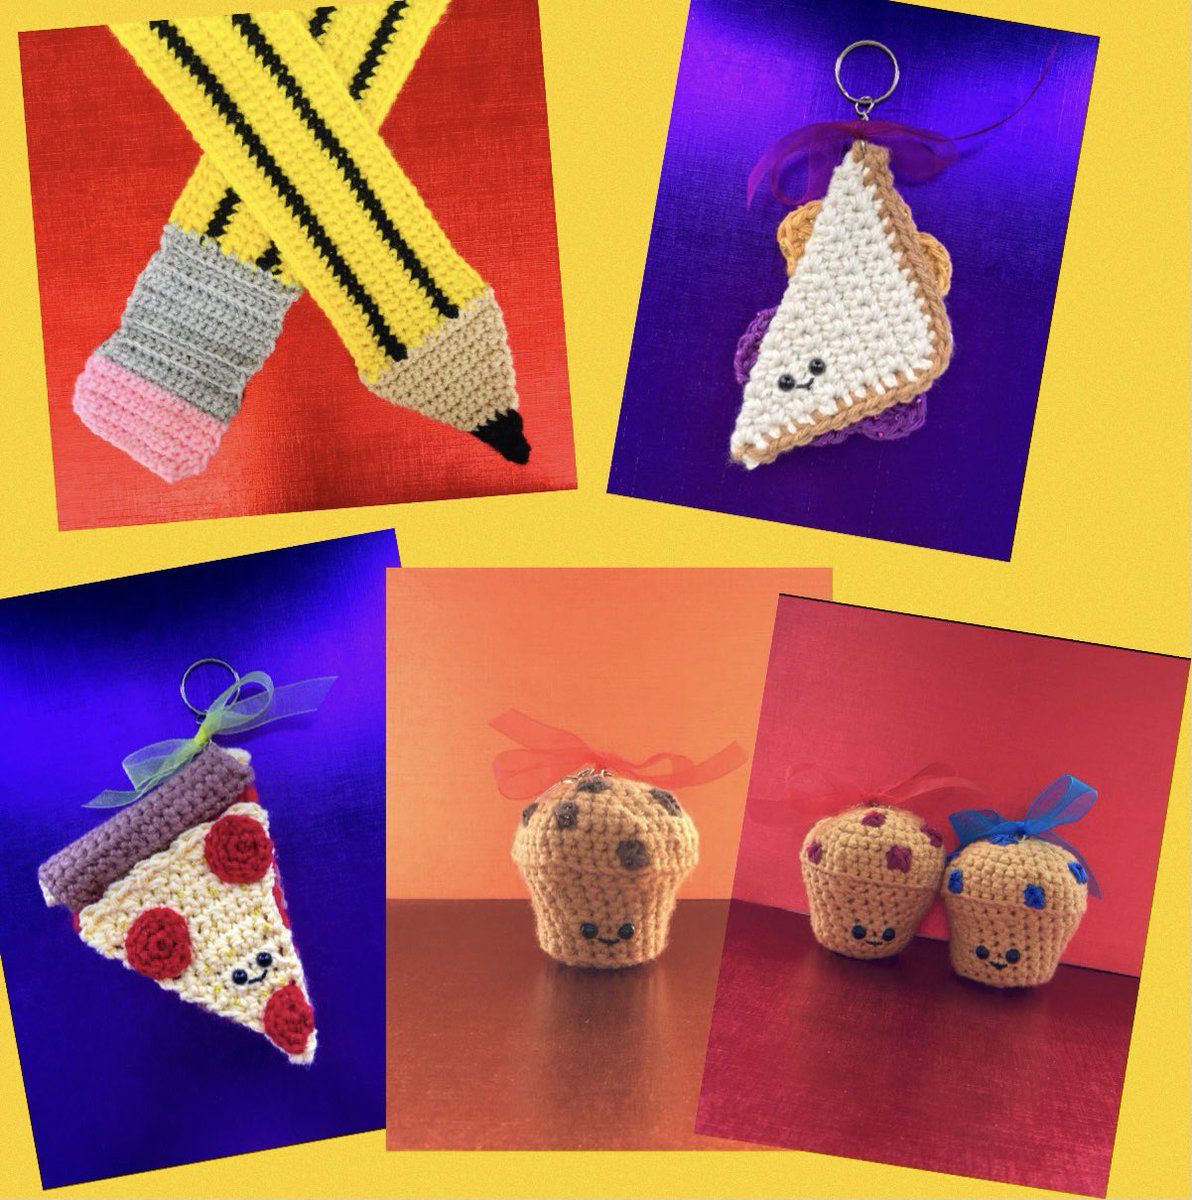 #CelebratingAmerica 🌈 I'm hand making masks and cute items to help pay my bills. Thank you to anyone who looks, it's greatly appreciated!  #masks #sale  #wednesdaymorning #Wednesdaythoughts #WednesdayMotivation #wednesdaywisdom